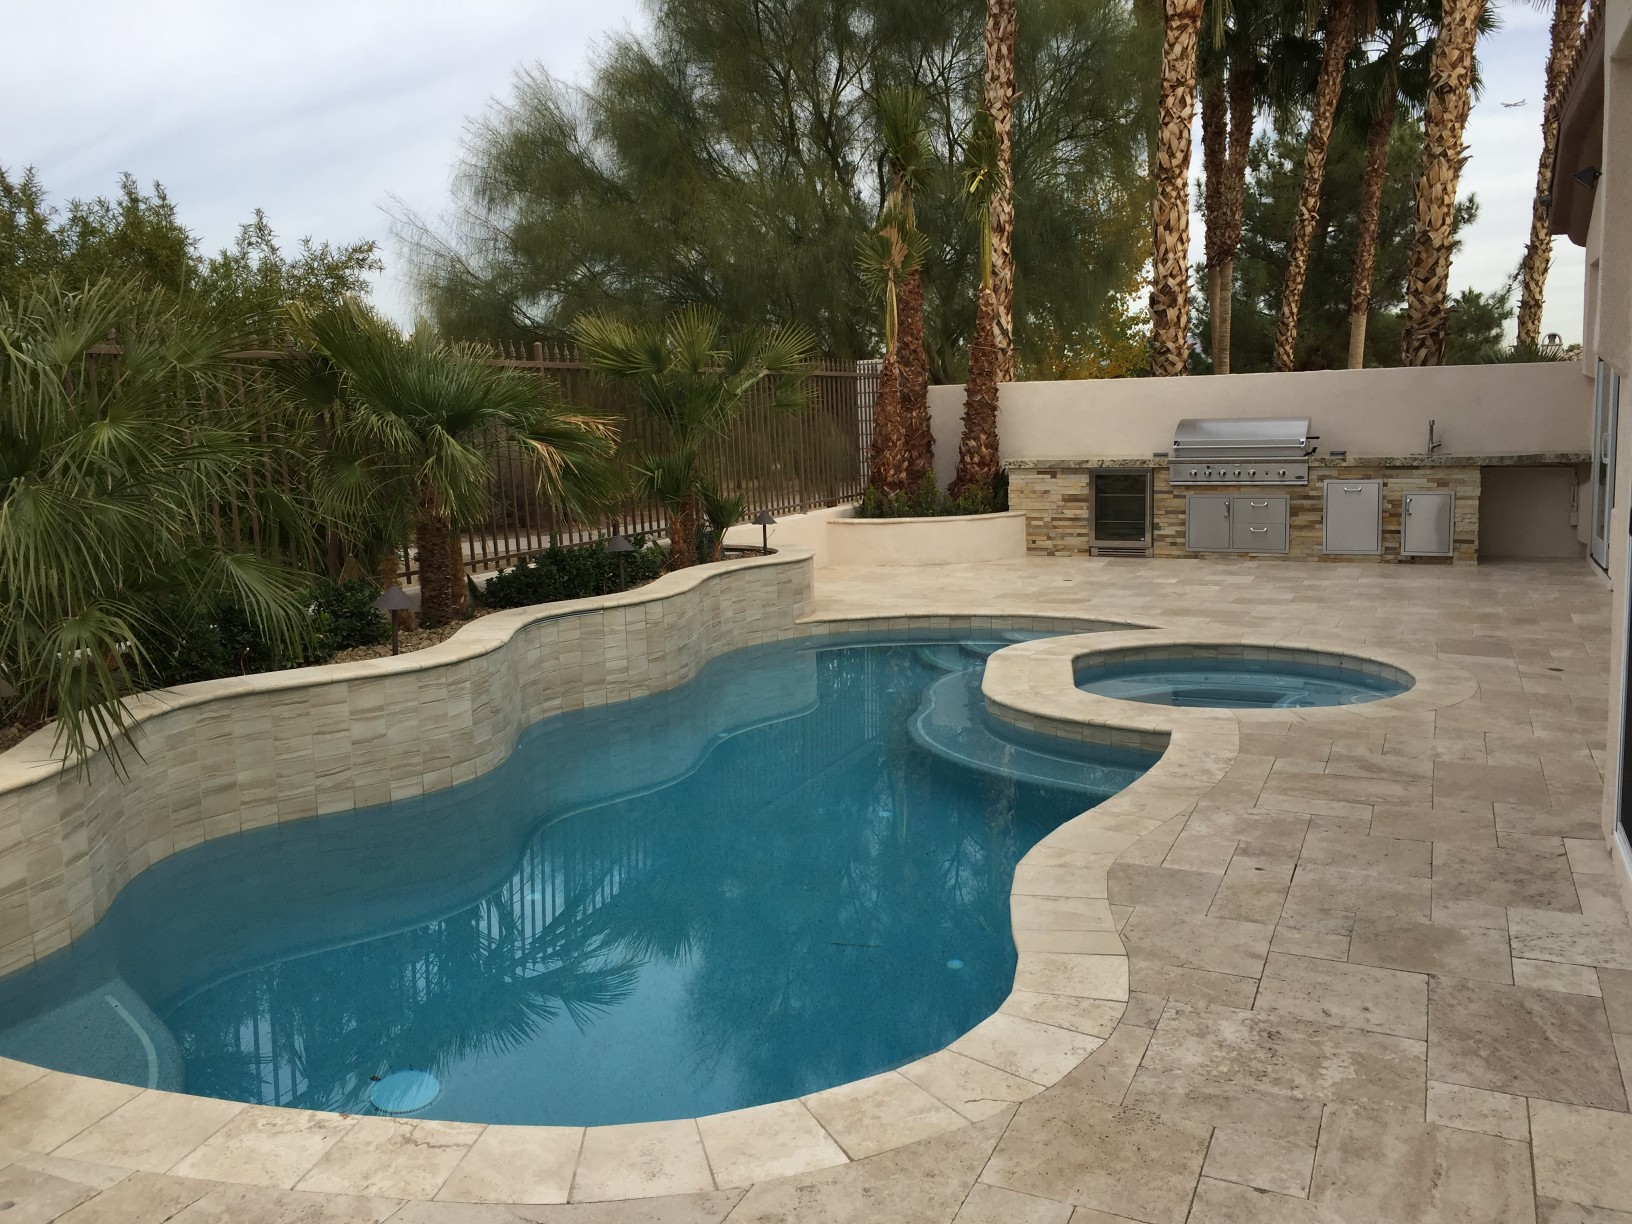 interior remodel and addition with backyard bbq patio and pool spa